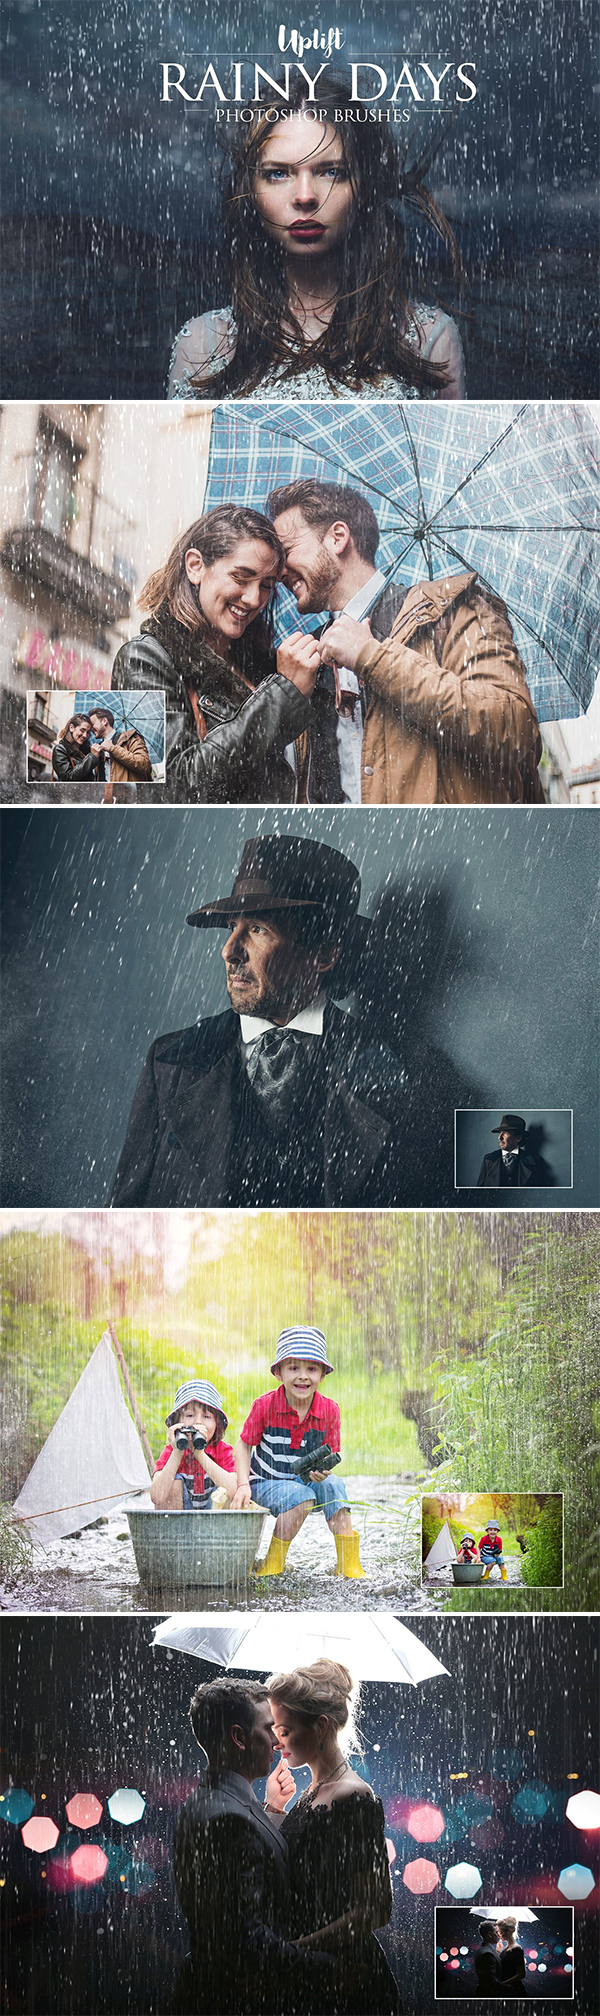 30 Rain Brushes for Photoshop